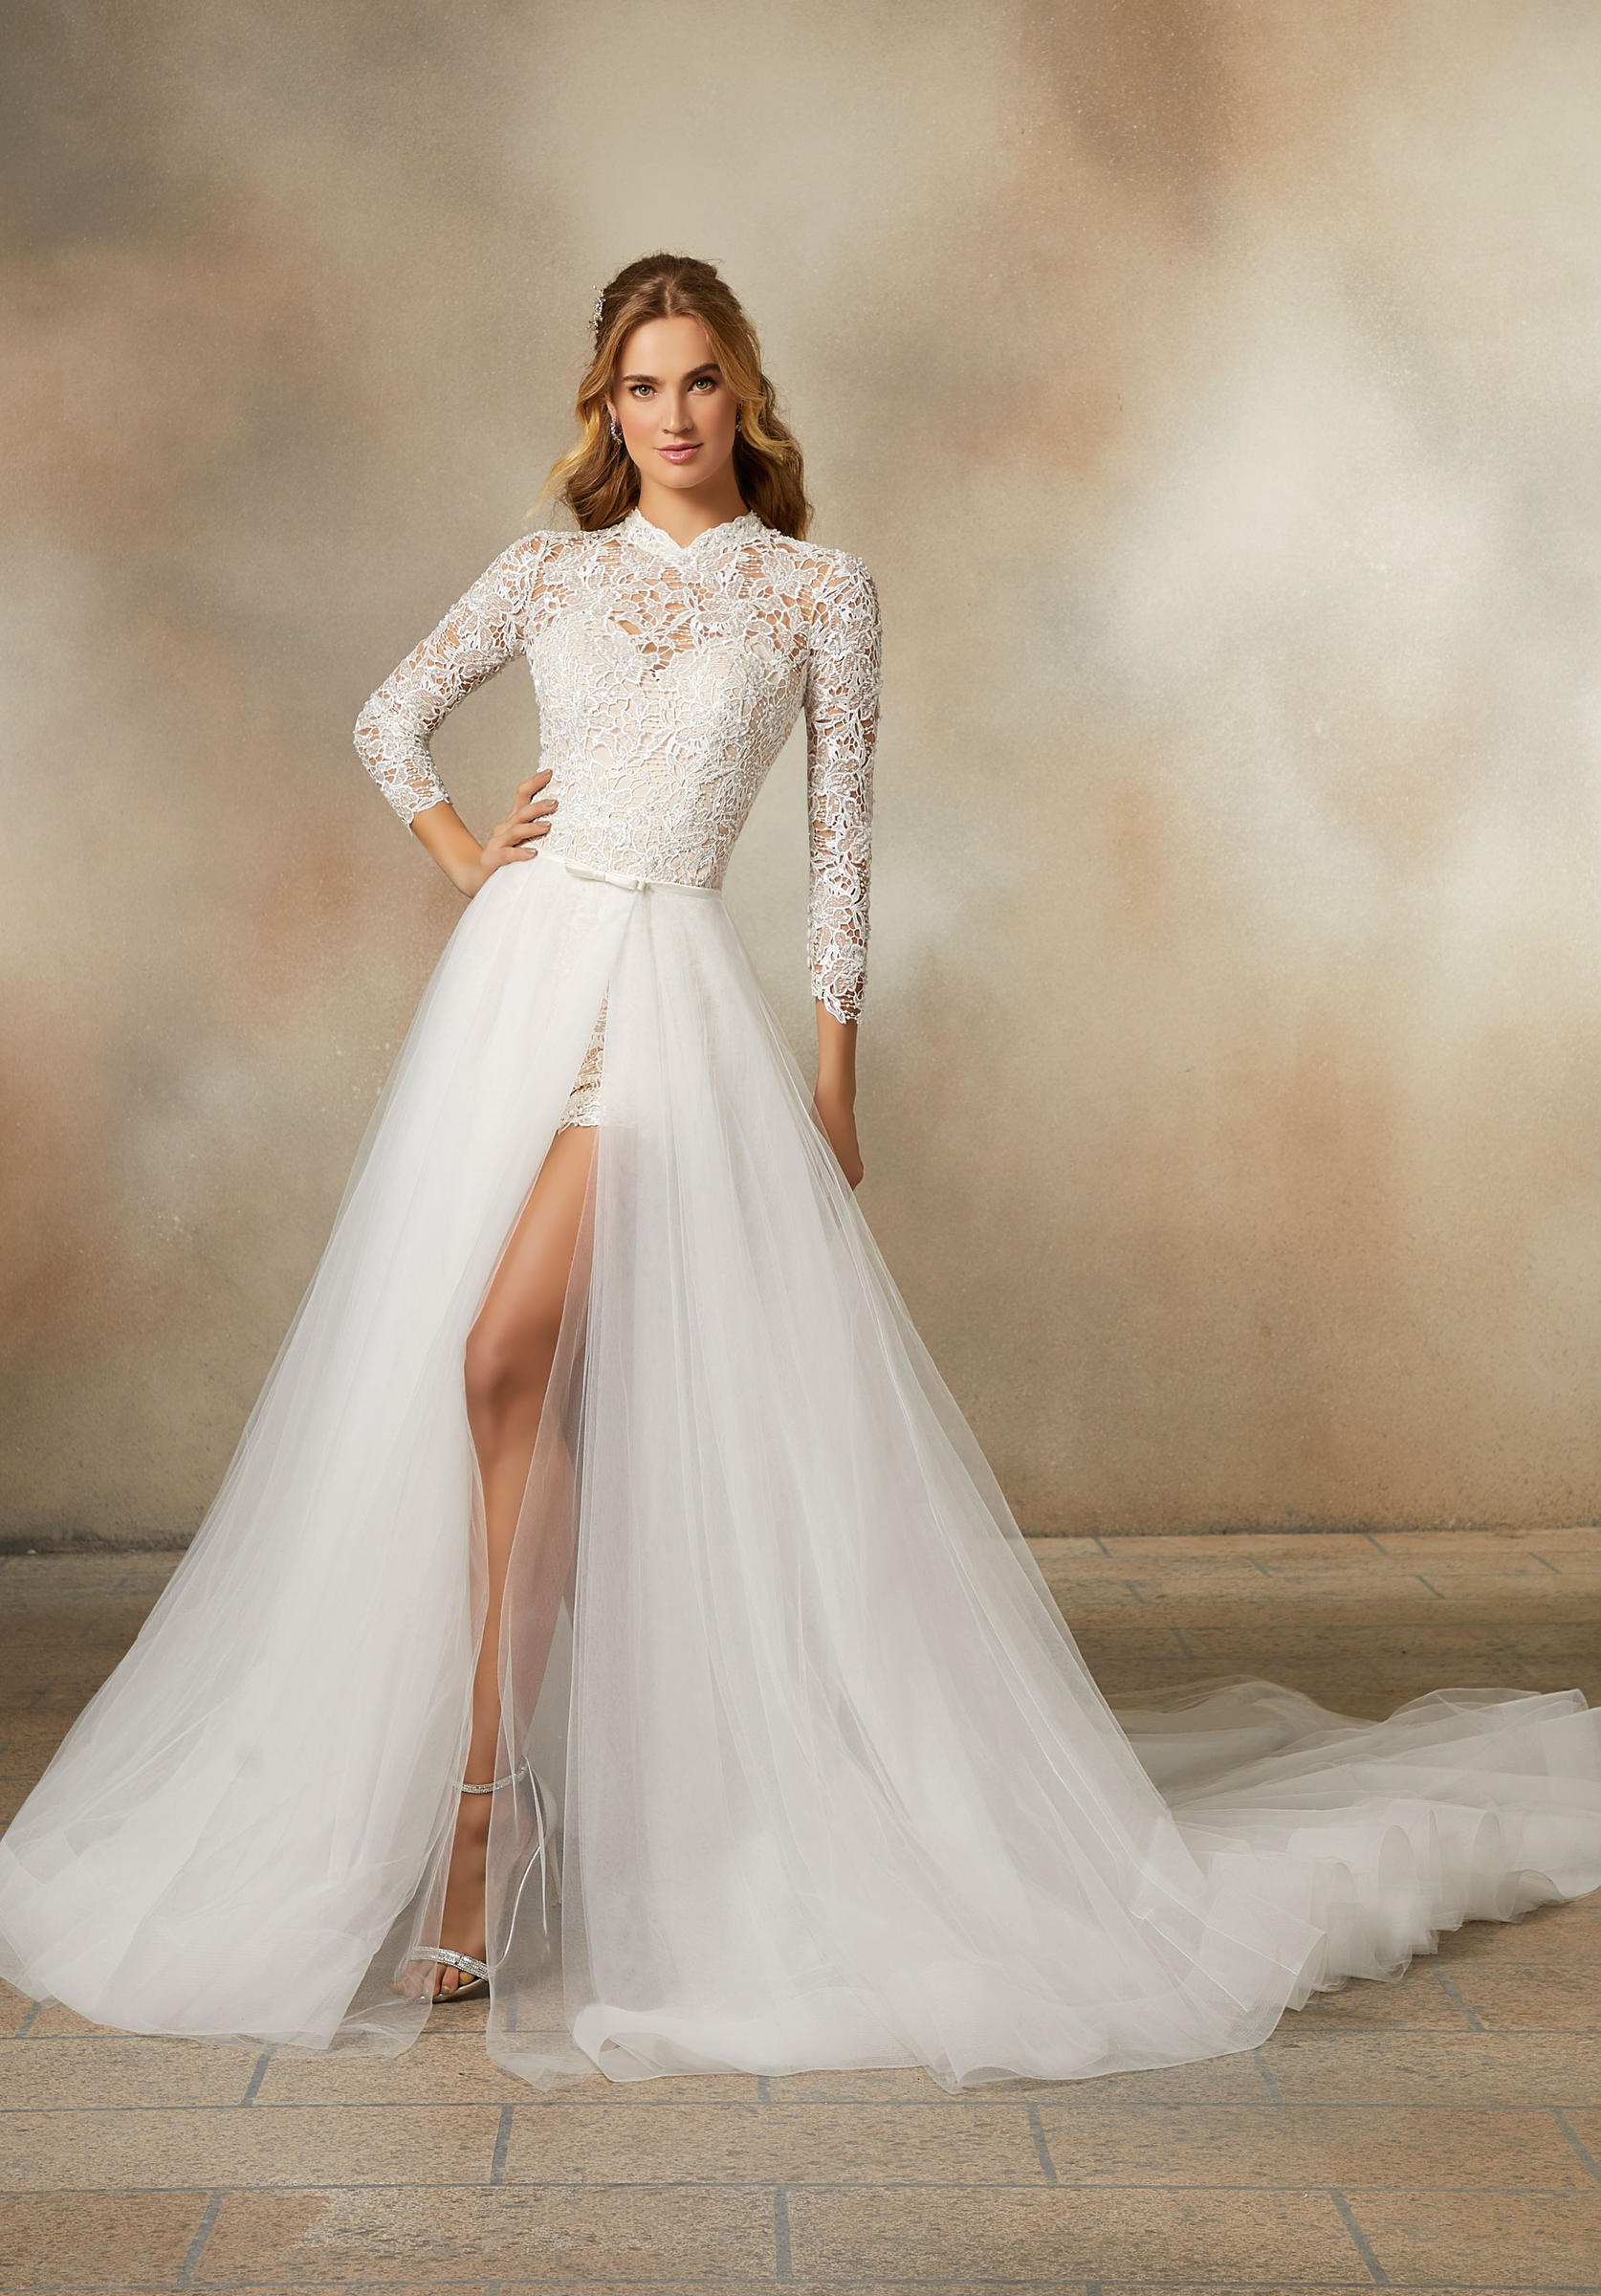 033aed44e0 MoriLee Bridal Gowns 2019 in Michigan | Viper Apparel Morilee Bridal ...